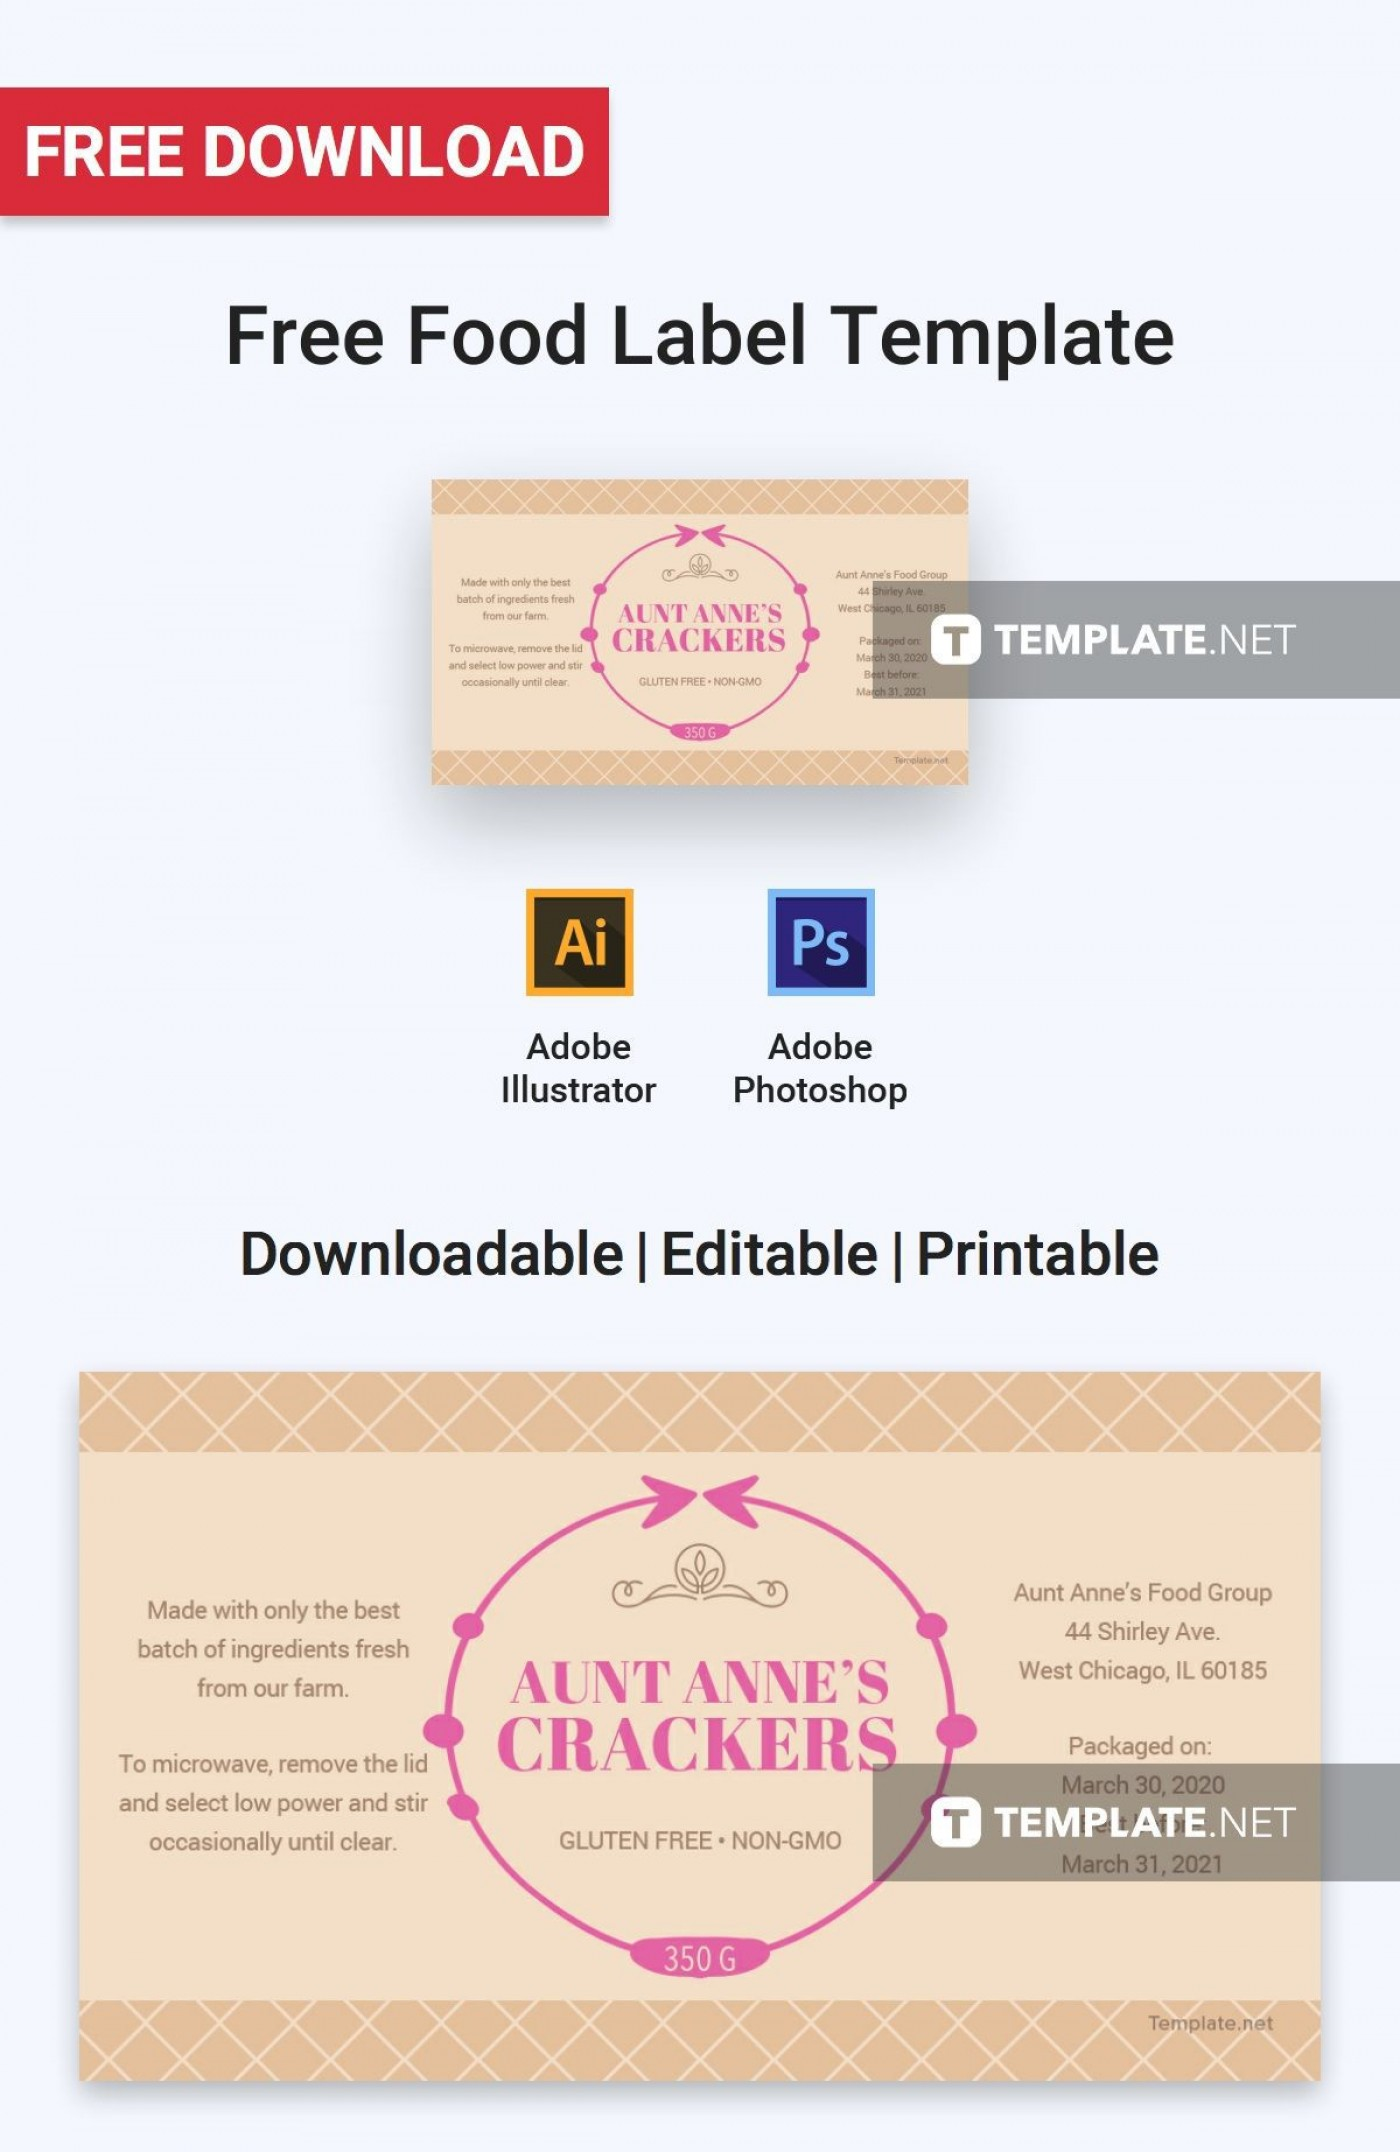 006 Phenomenal Microsoft Word Label Template Free Download High Definition 1400